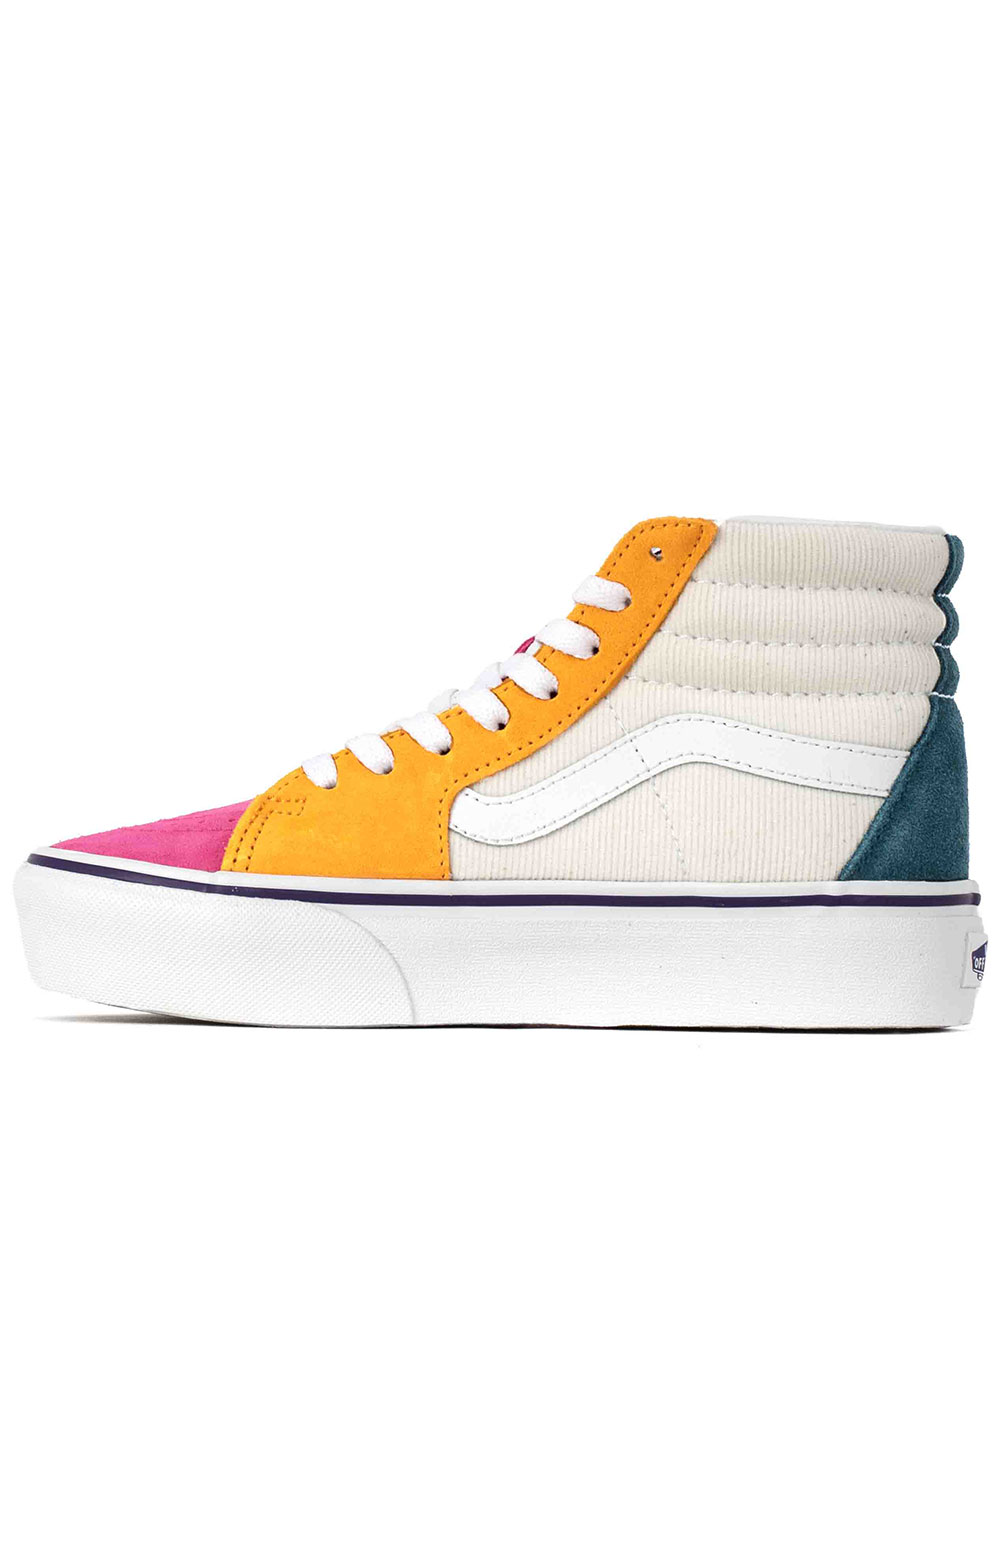 (TKNWVY) Mini Cord SK8-Hi Platform 2 Shoes - Multi/True White  4